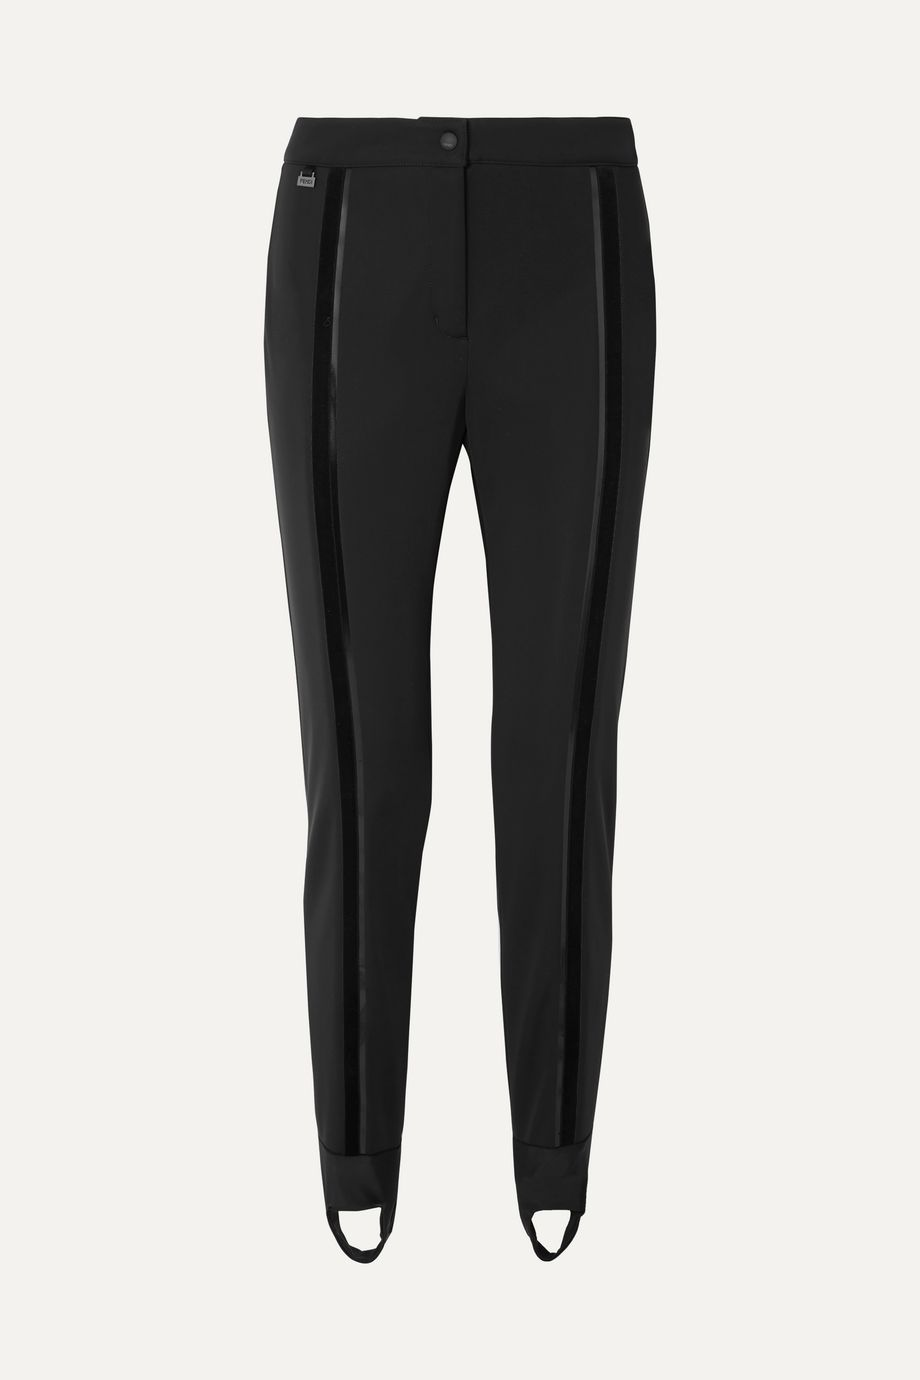 Fendi Stretch ski stirrup pants